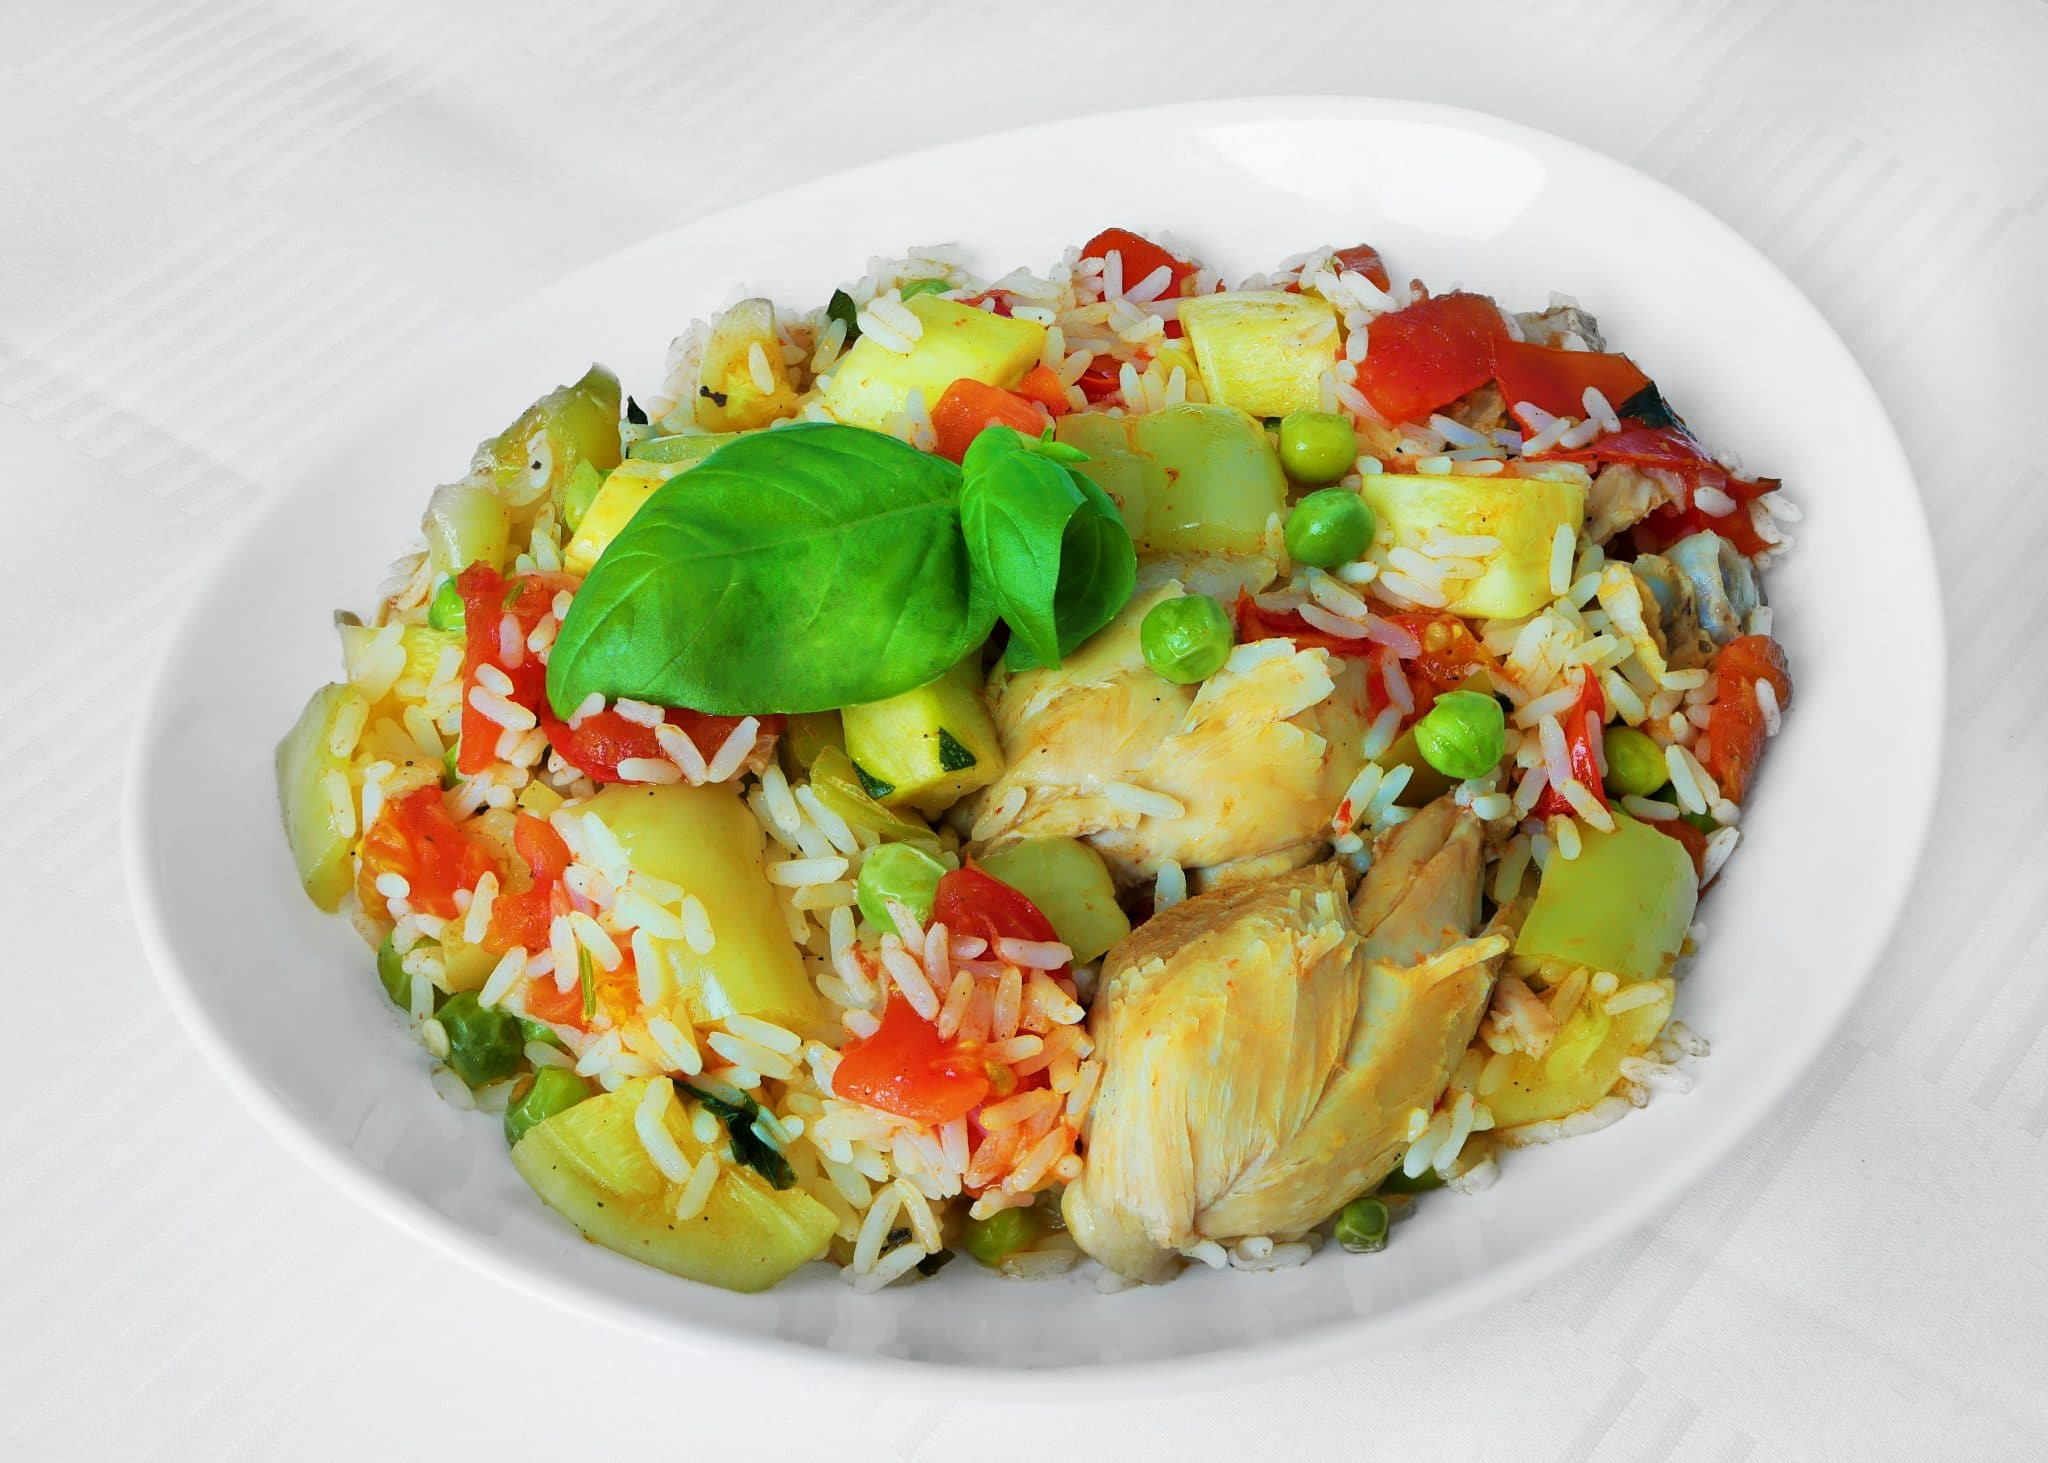 risotto with vegetables, risotto dish